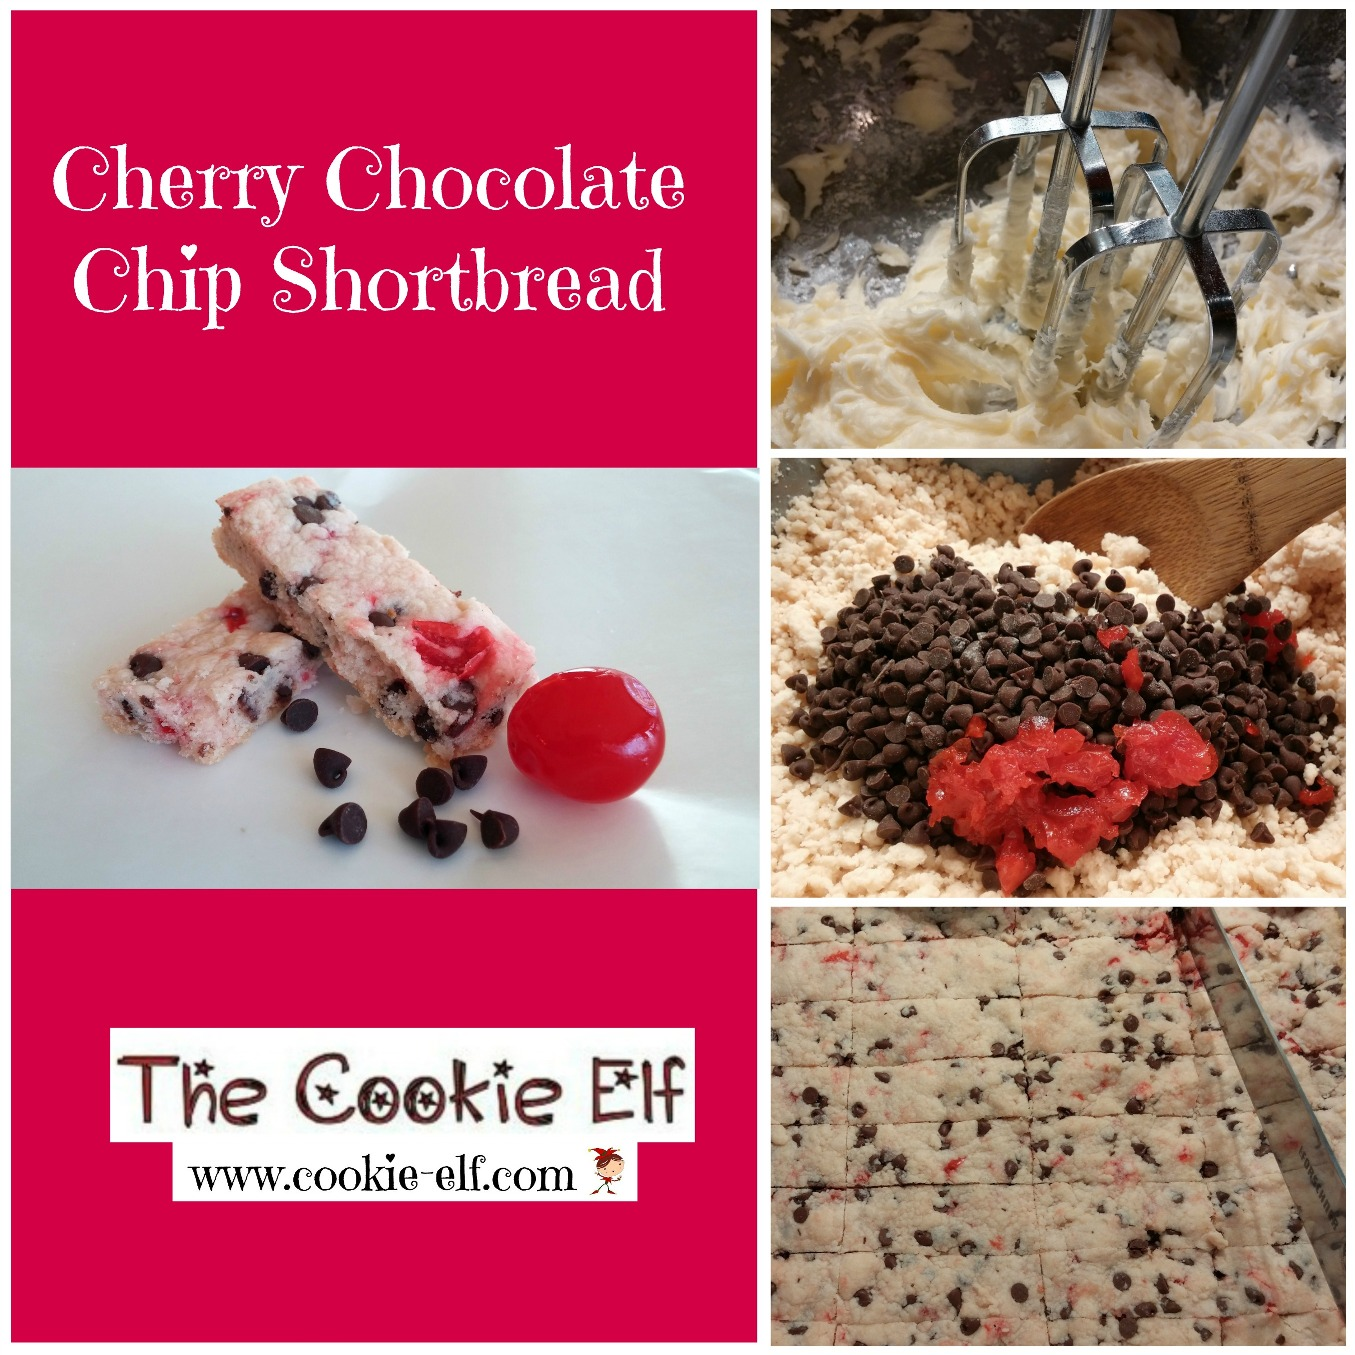 Cherry Chocolate Chip Shortbread from The Cookie Elf